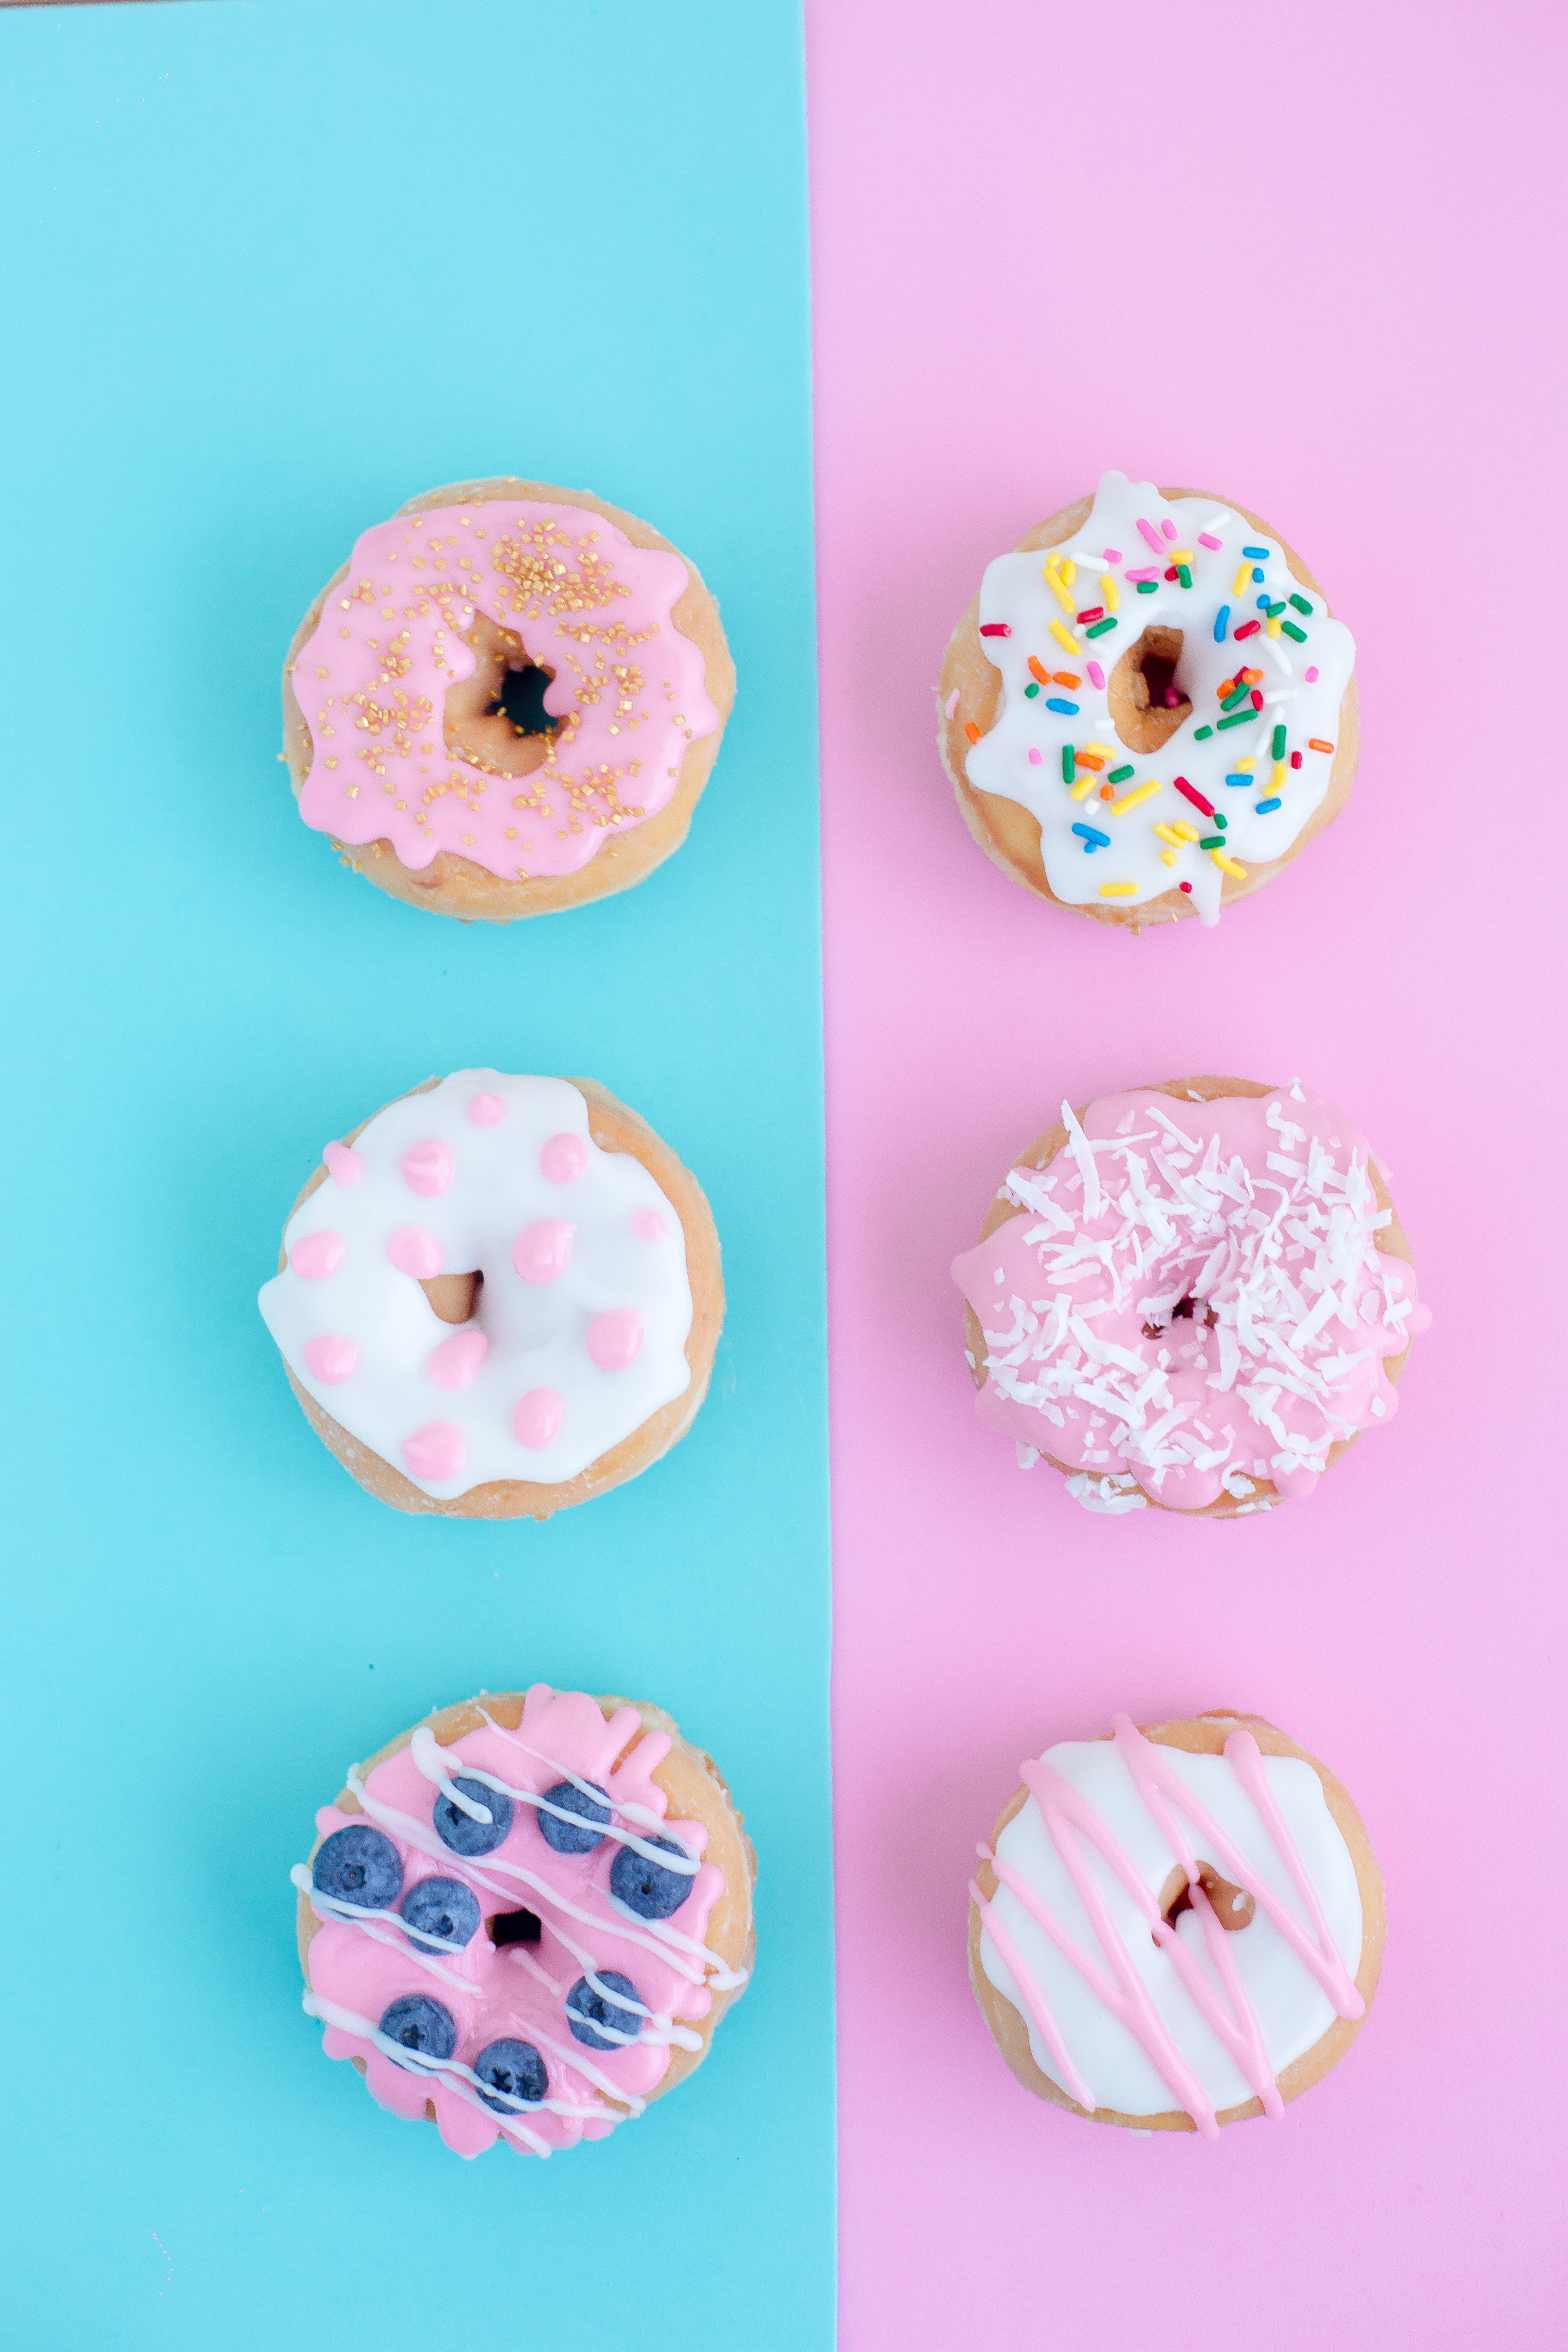 six assorted-flavor doughnuts